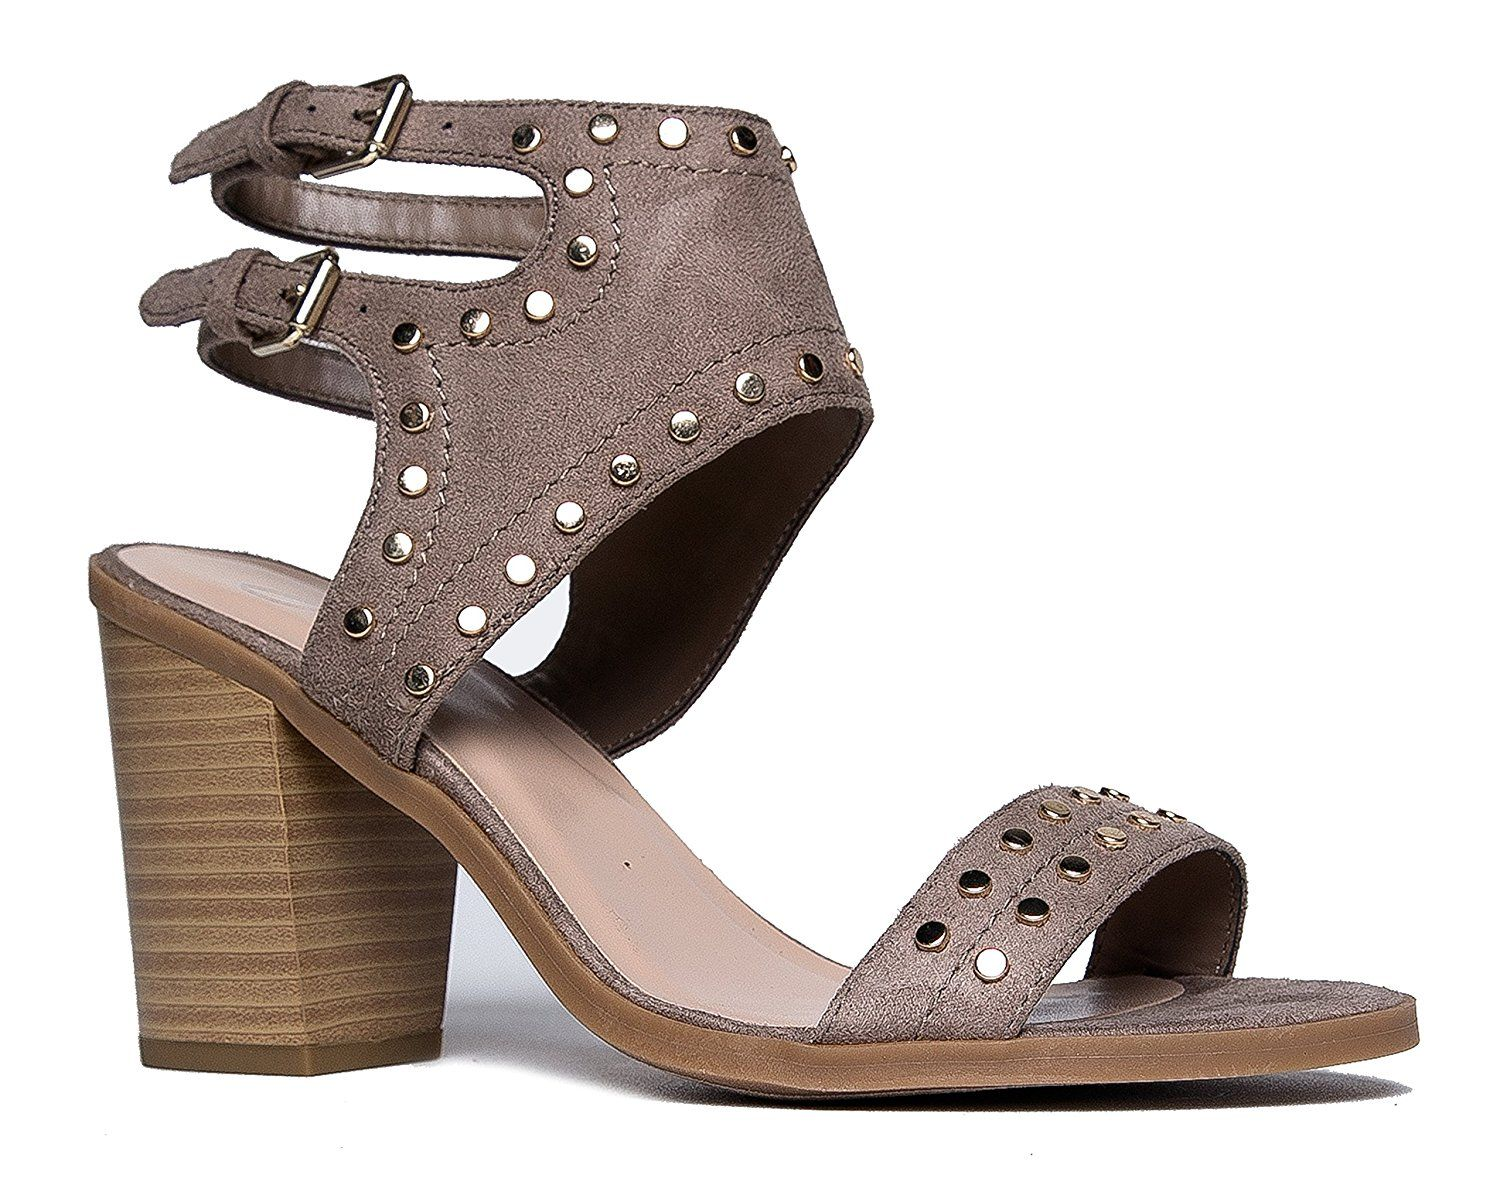 30cacbfffbd J. Adams Studded Suede Cut Out Sandal - High Heel Buckle Shoe - Edgy Sexy  Wood Block Heel - linq by.Women s Shoes